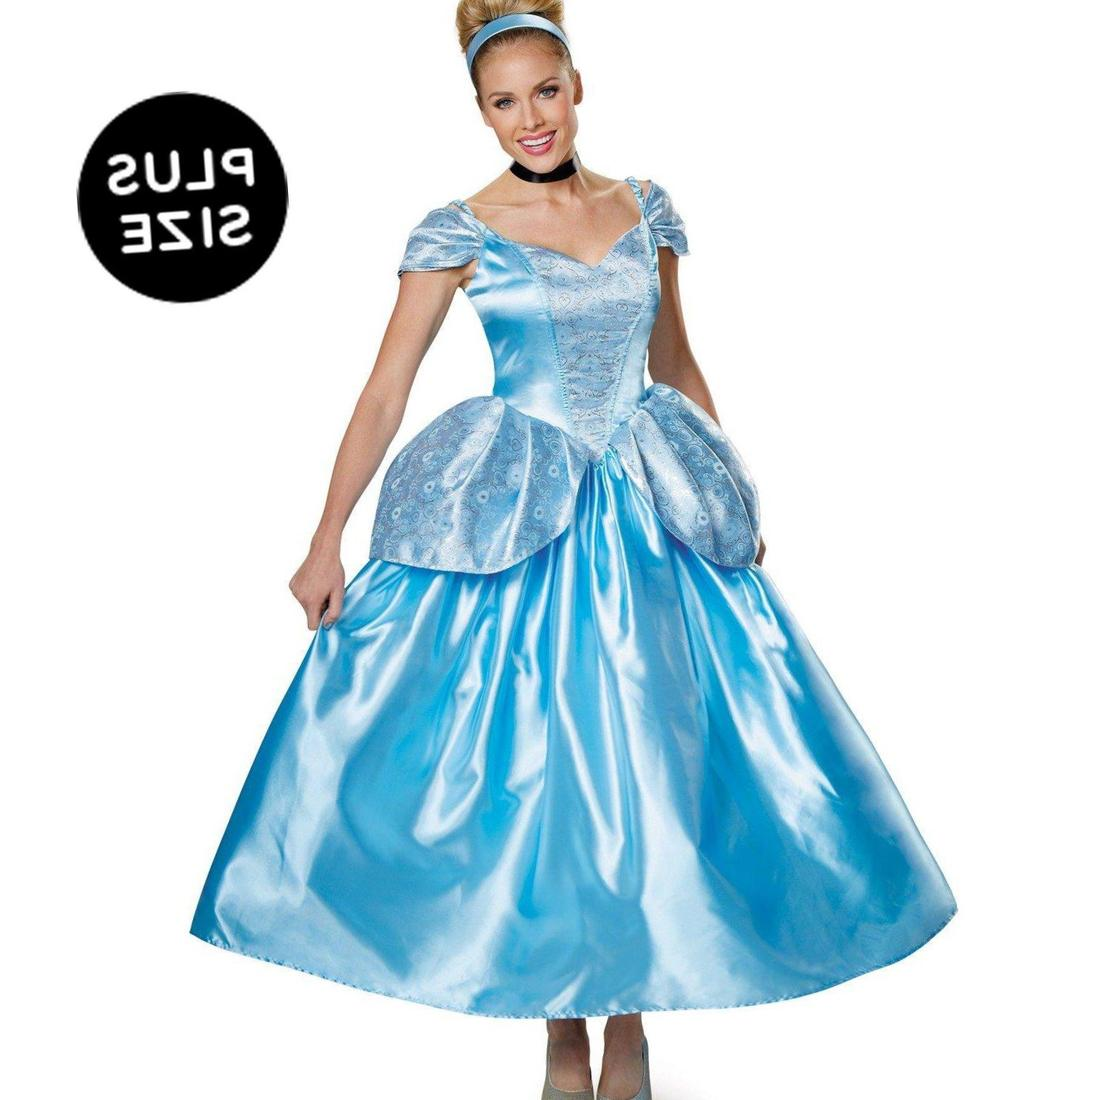 Plus size disney fancy dress - PlusLook.eu Collection